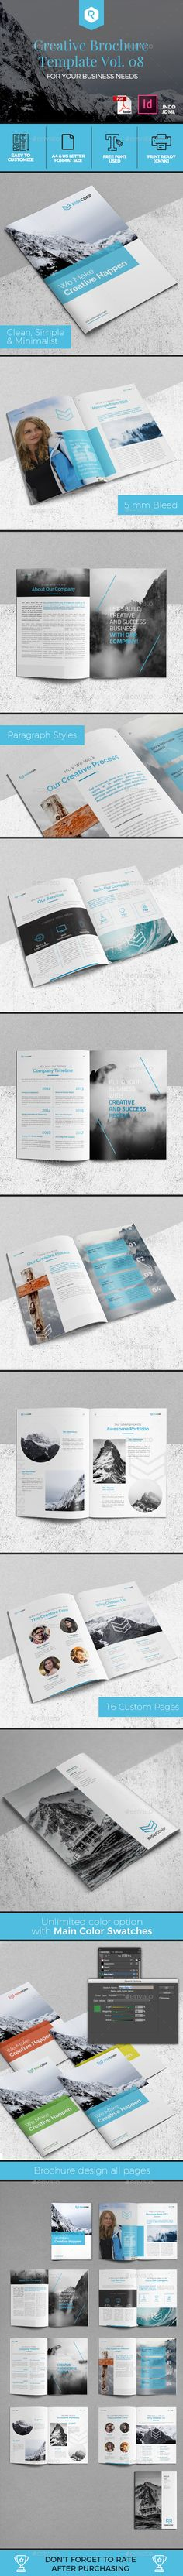 115 best Free Brochure Templates images on Pinterest